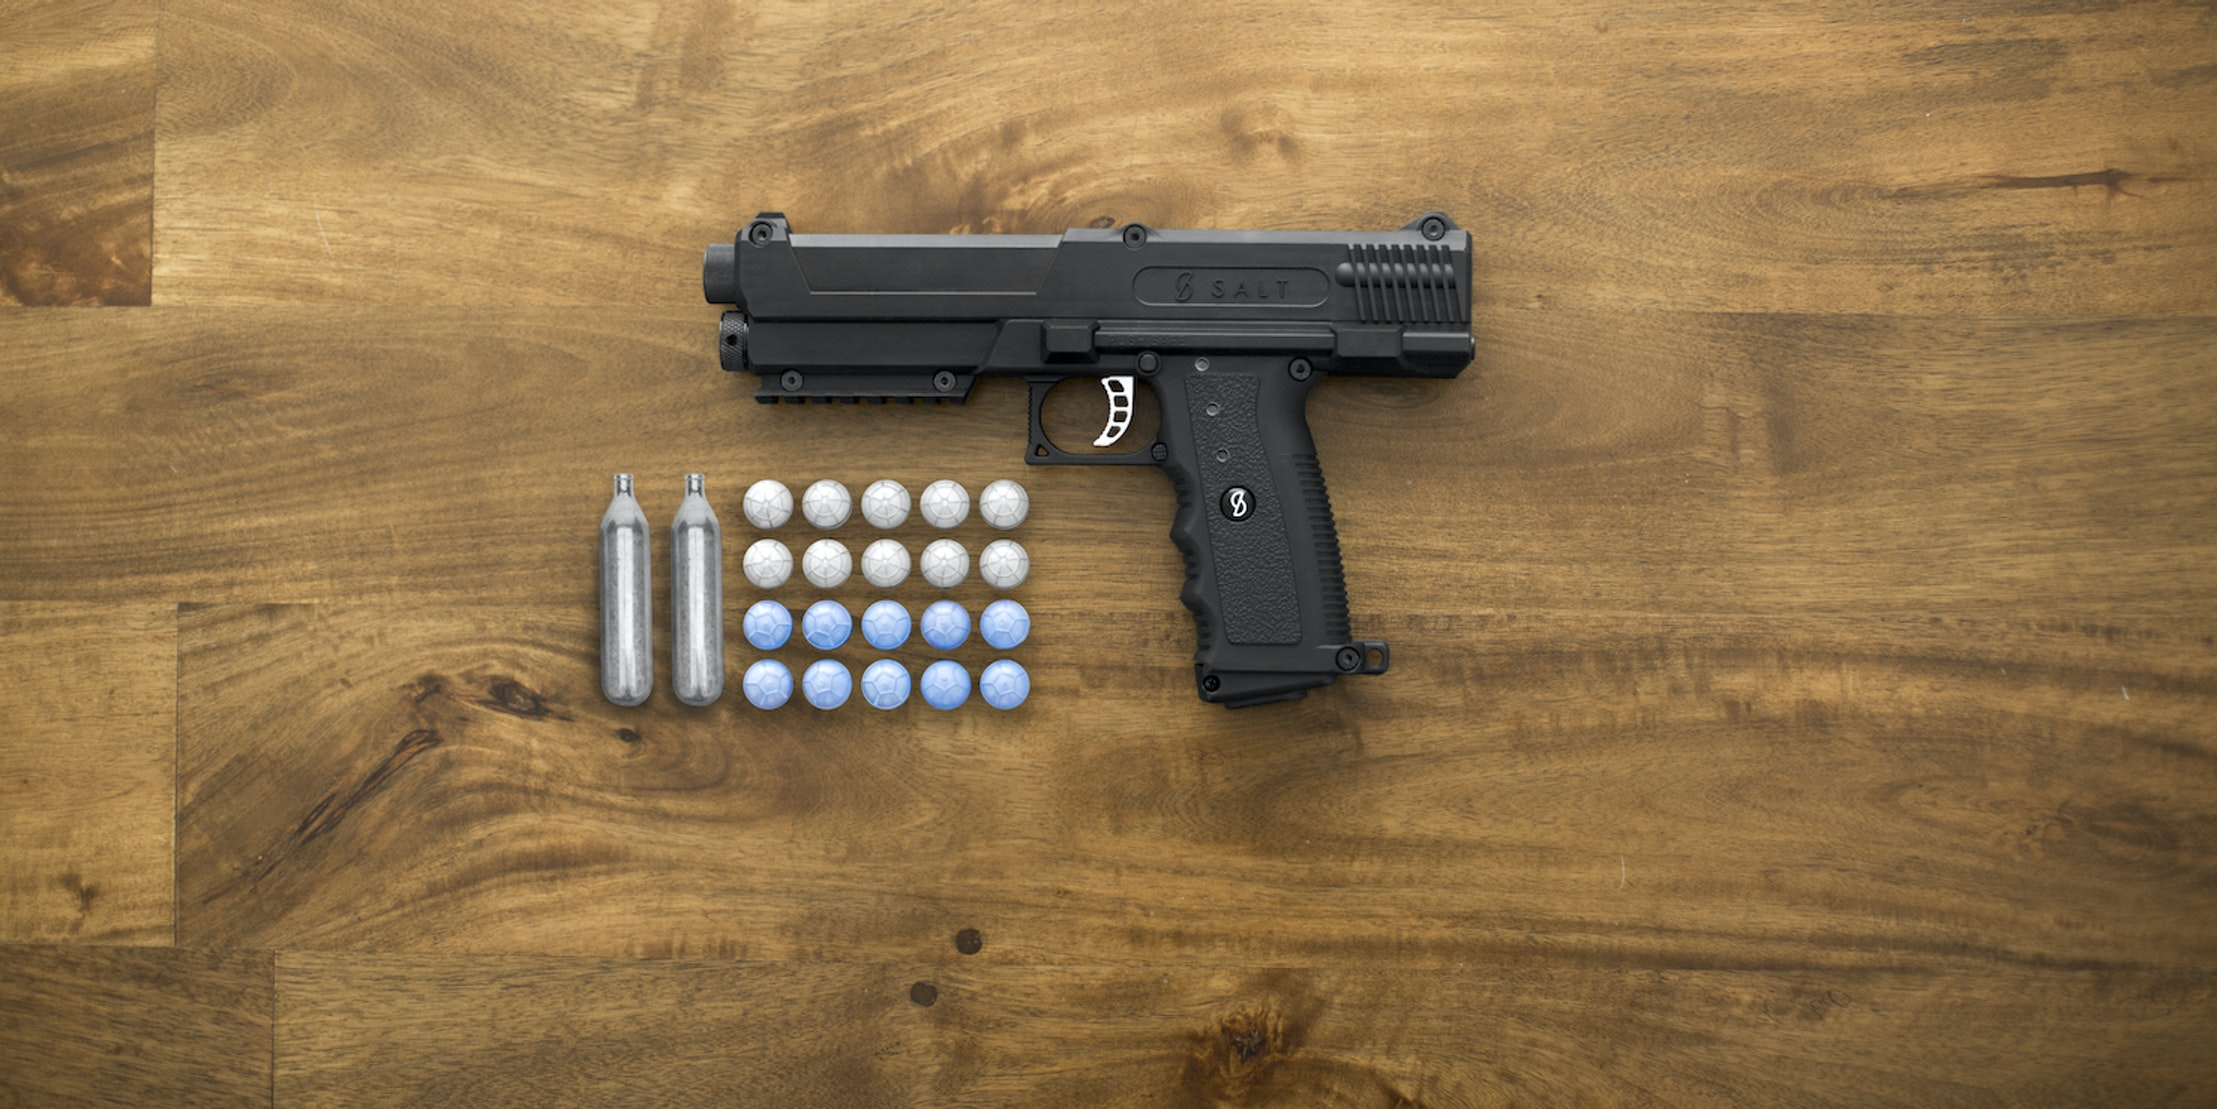 Could this gun save lives or is it just another weapon?